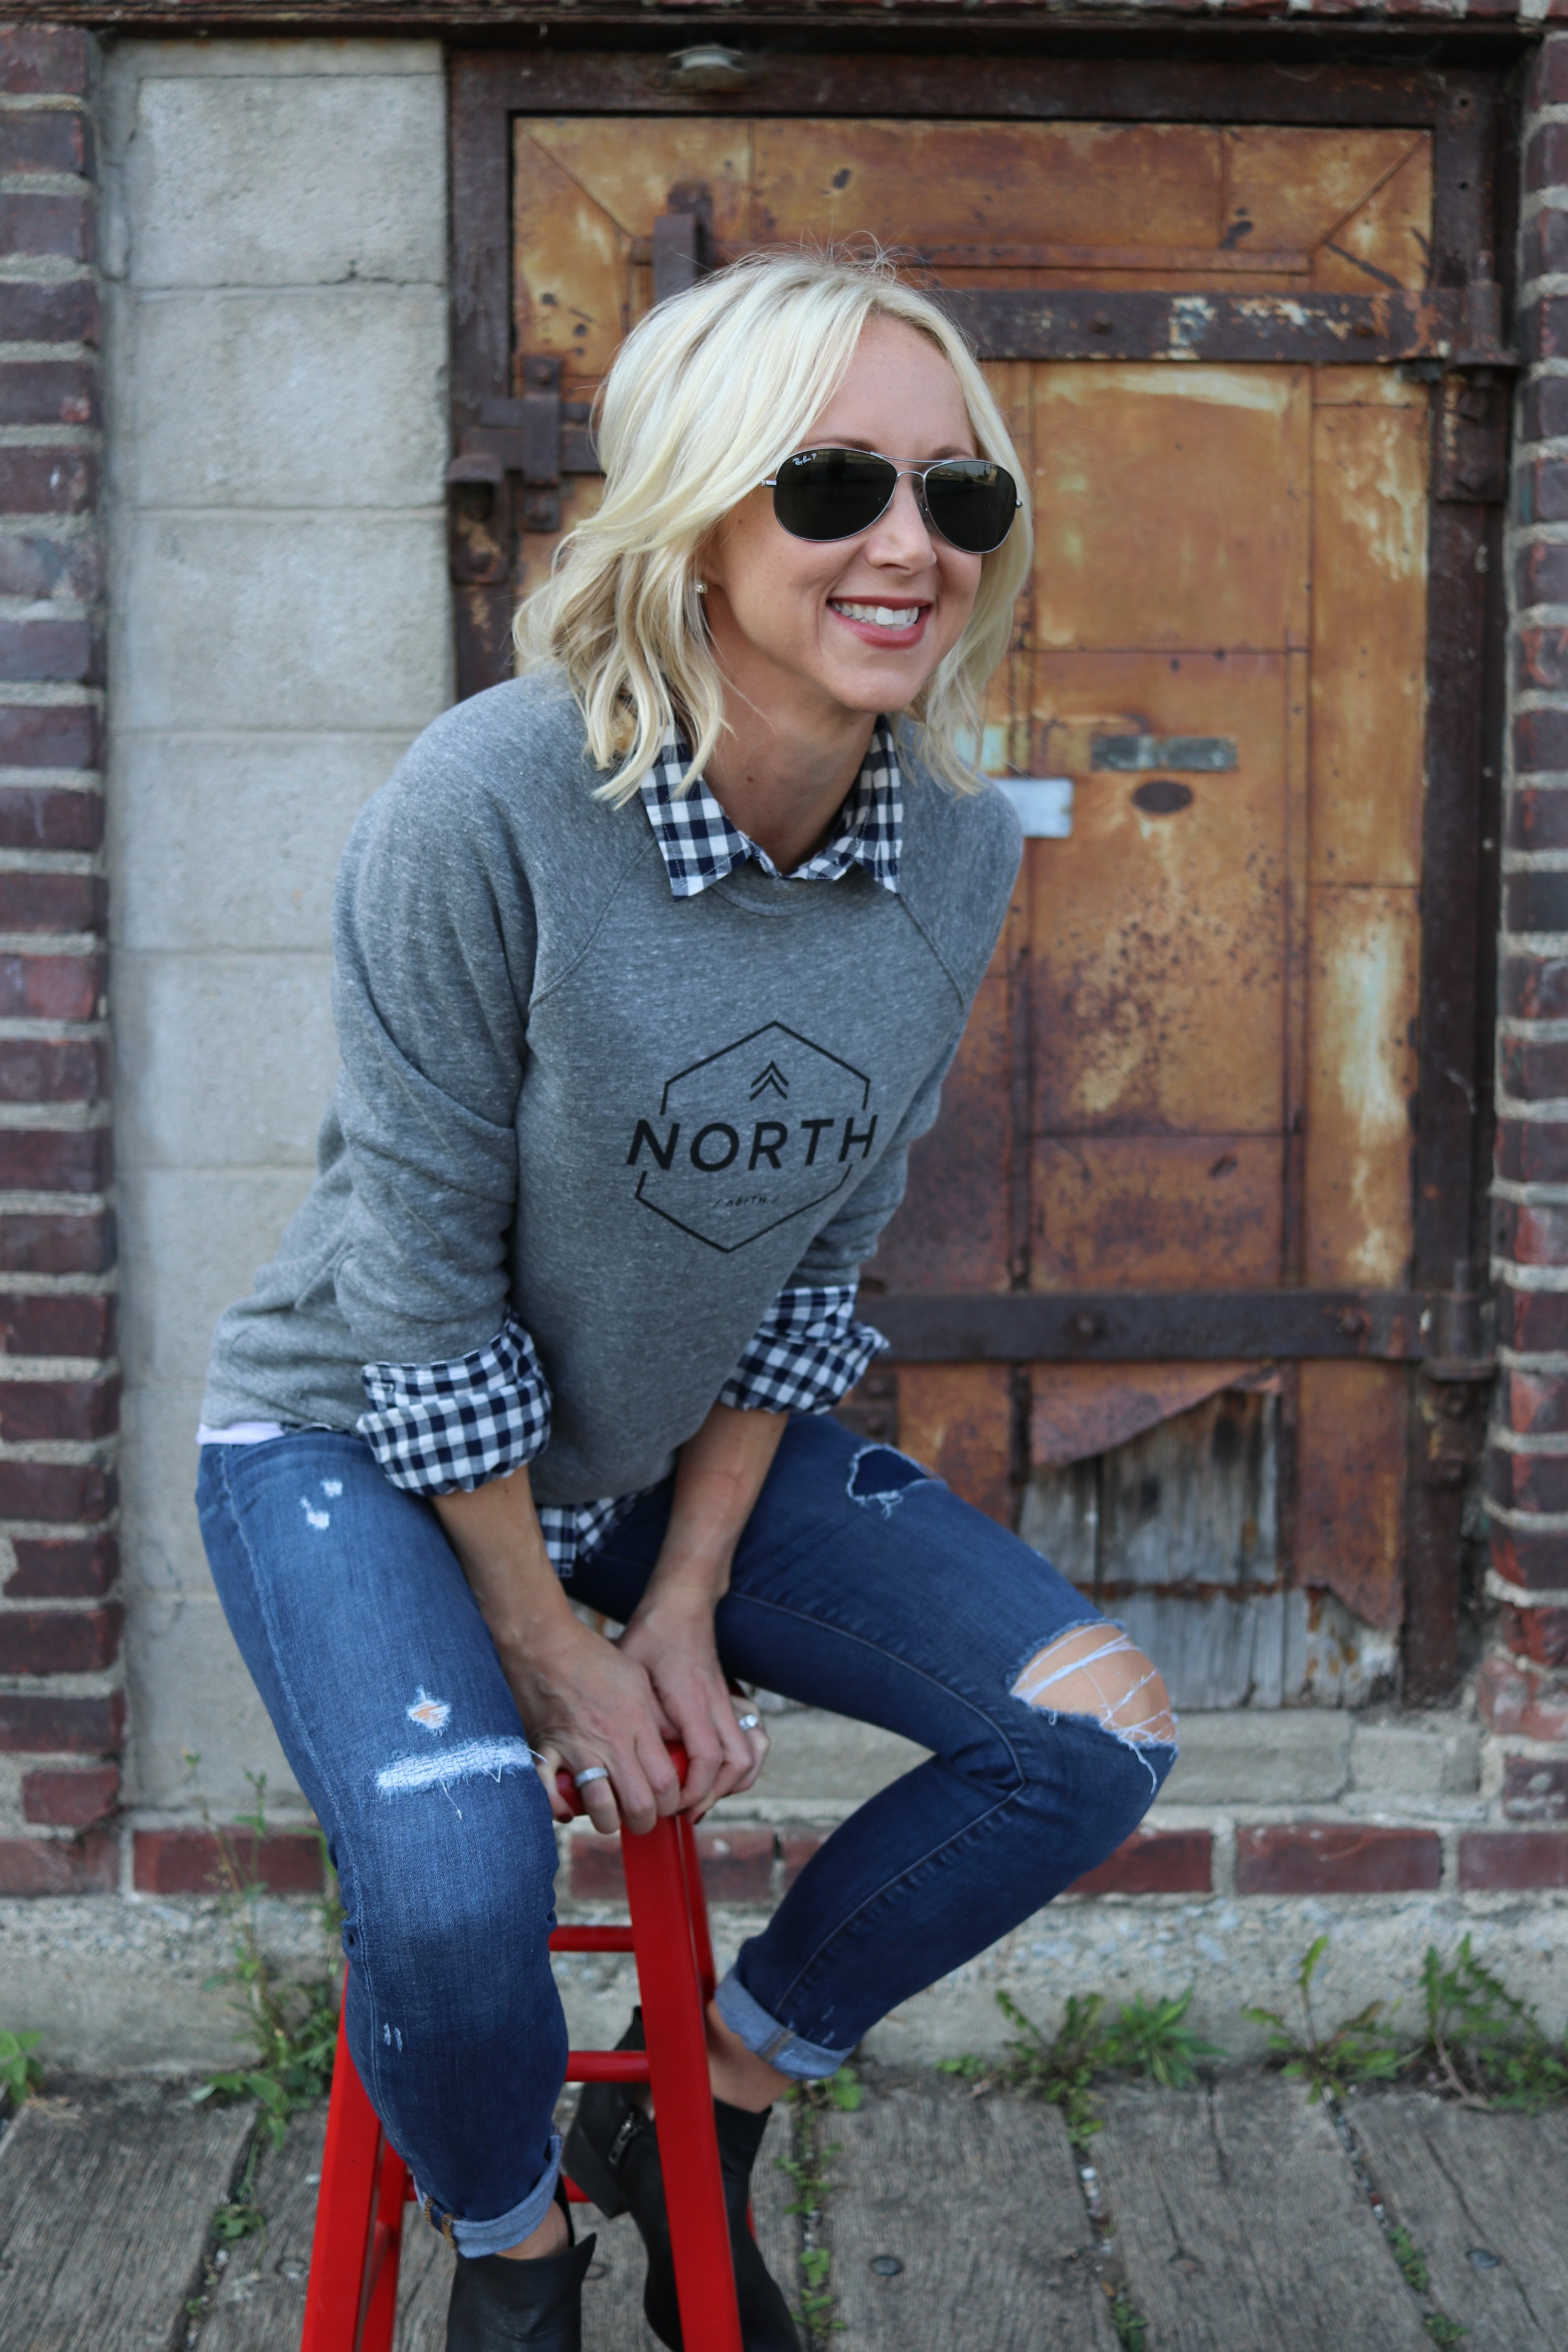 Last featured item.  North Sweatshirt  $49. Use the code Pinch25 for a special 25% off. Shipping is always free.